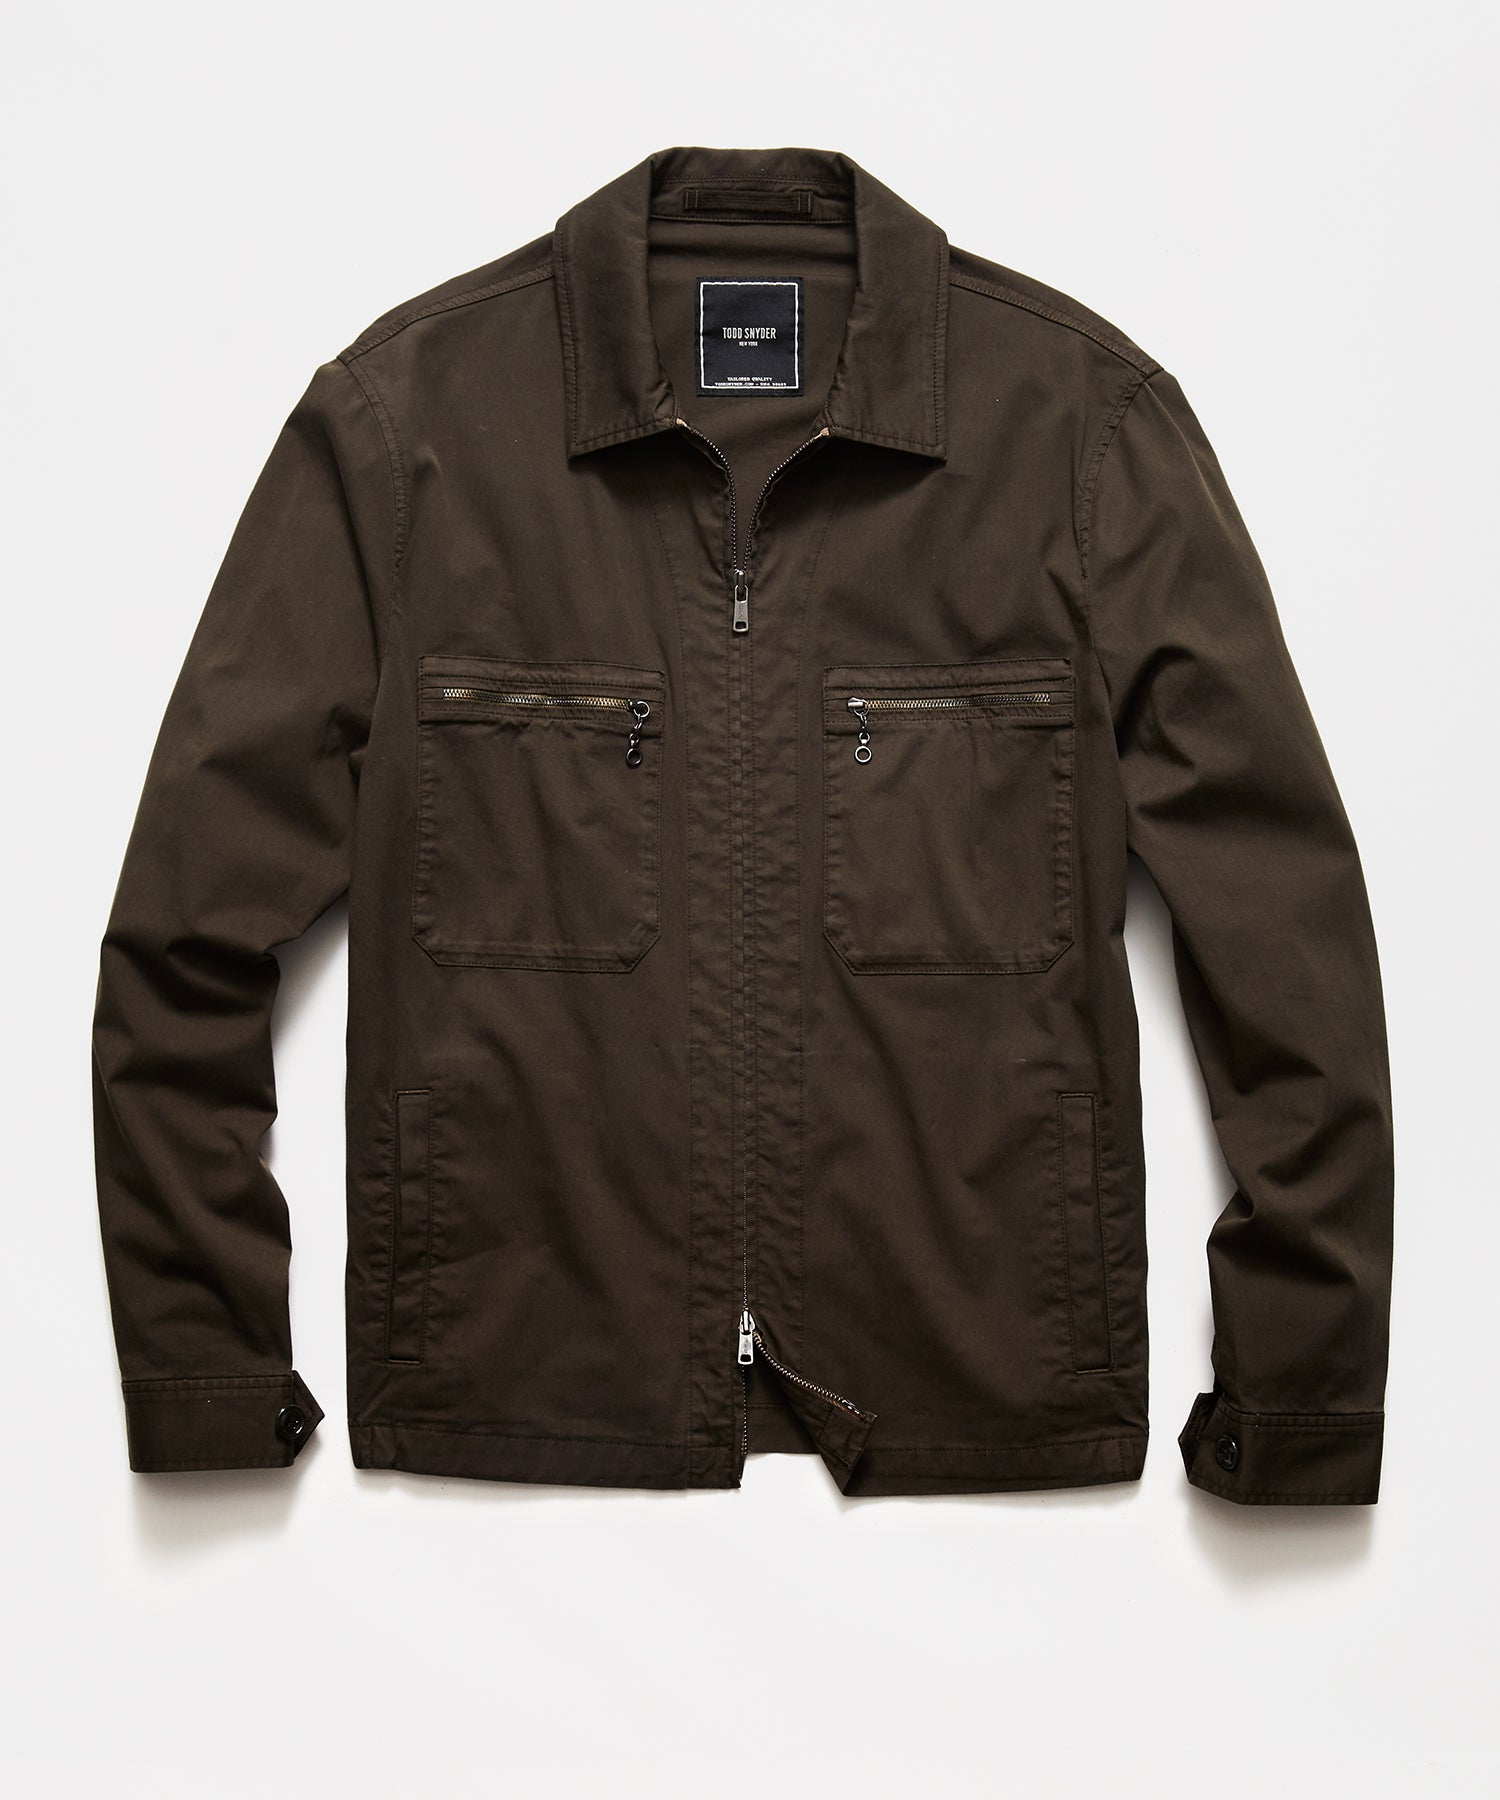 Italian Mechanic Jacket in Olive